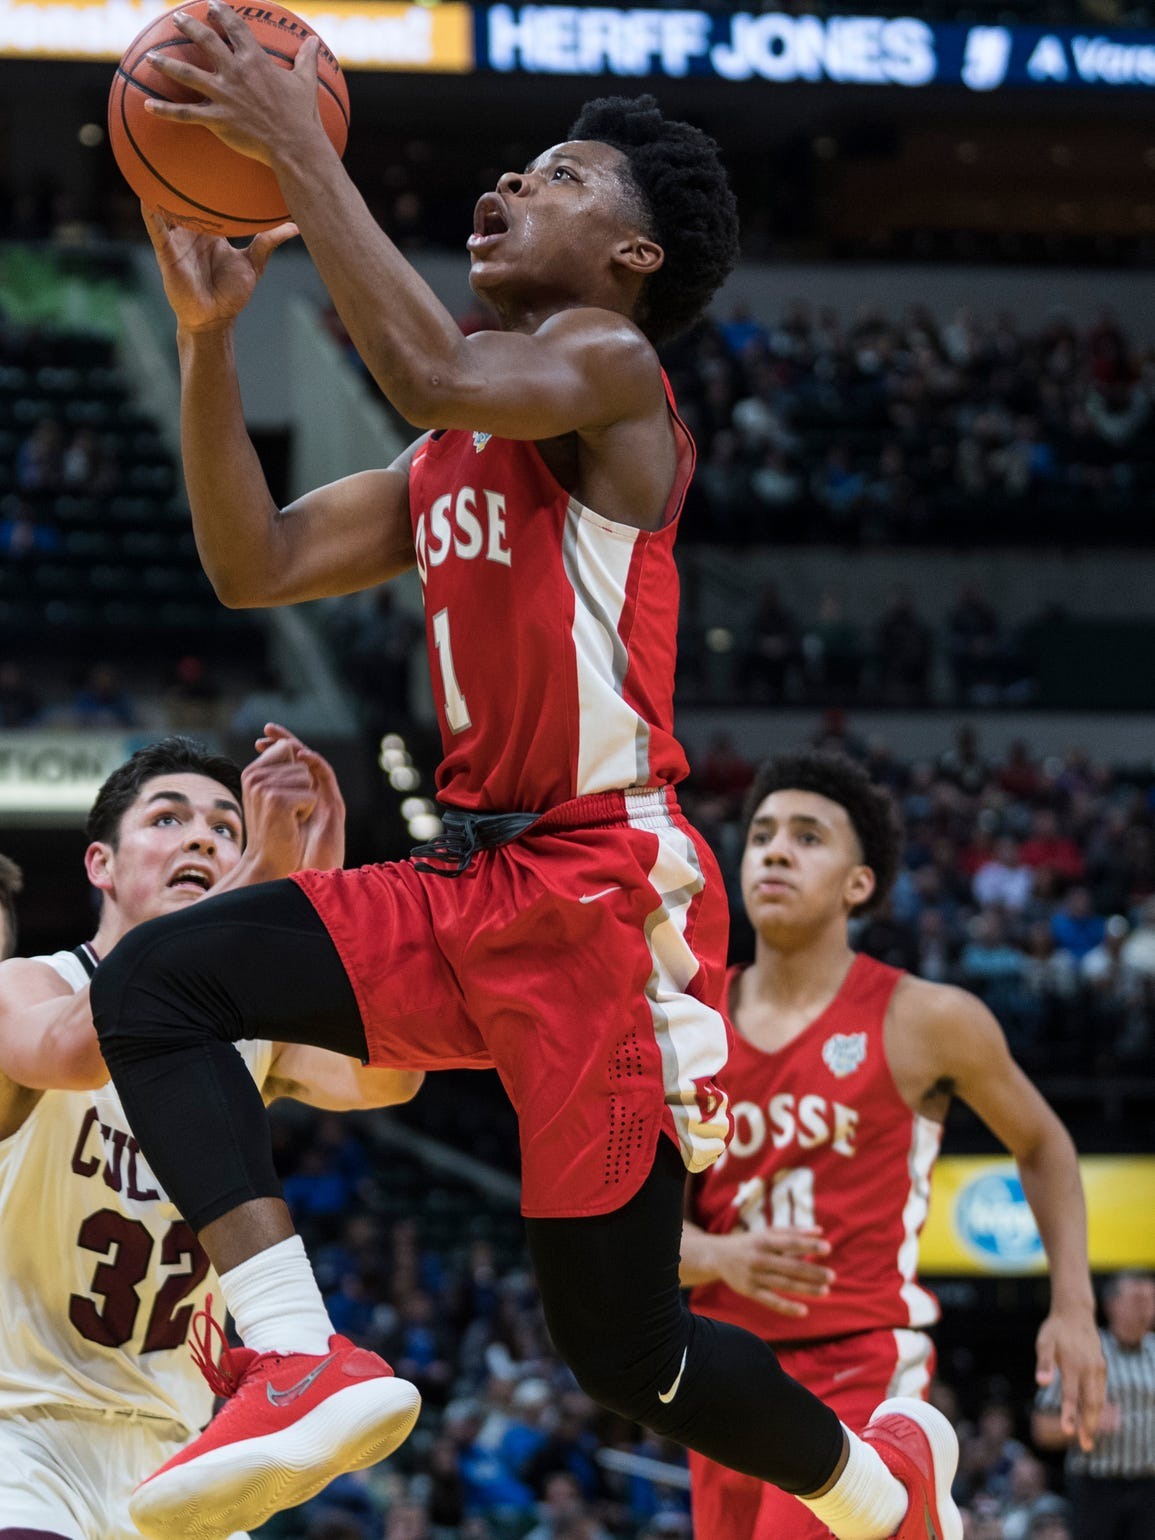 Bosse's Jaylin Chinn (1) goes for a lay up during the